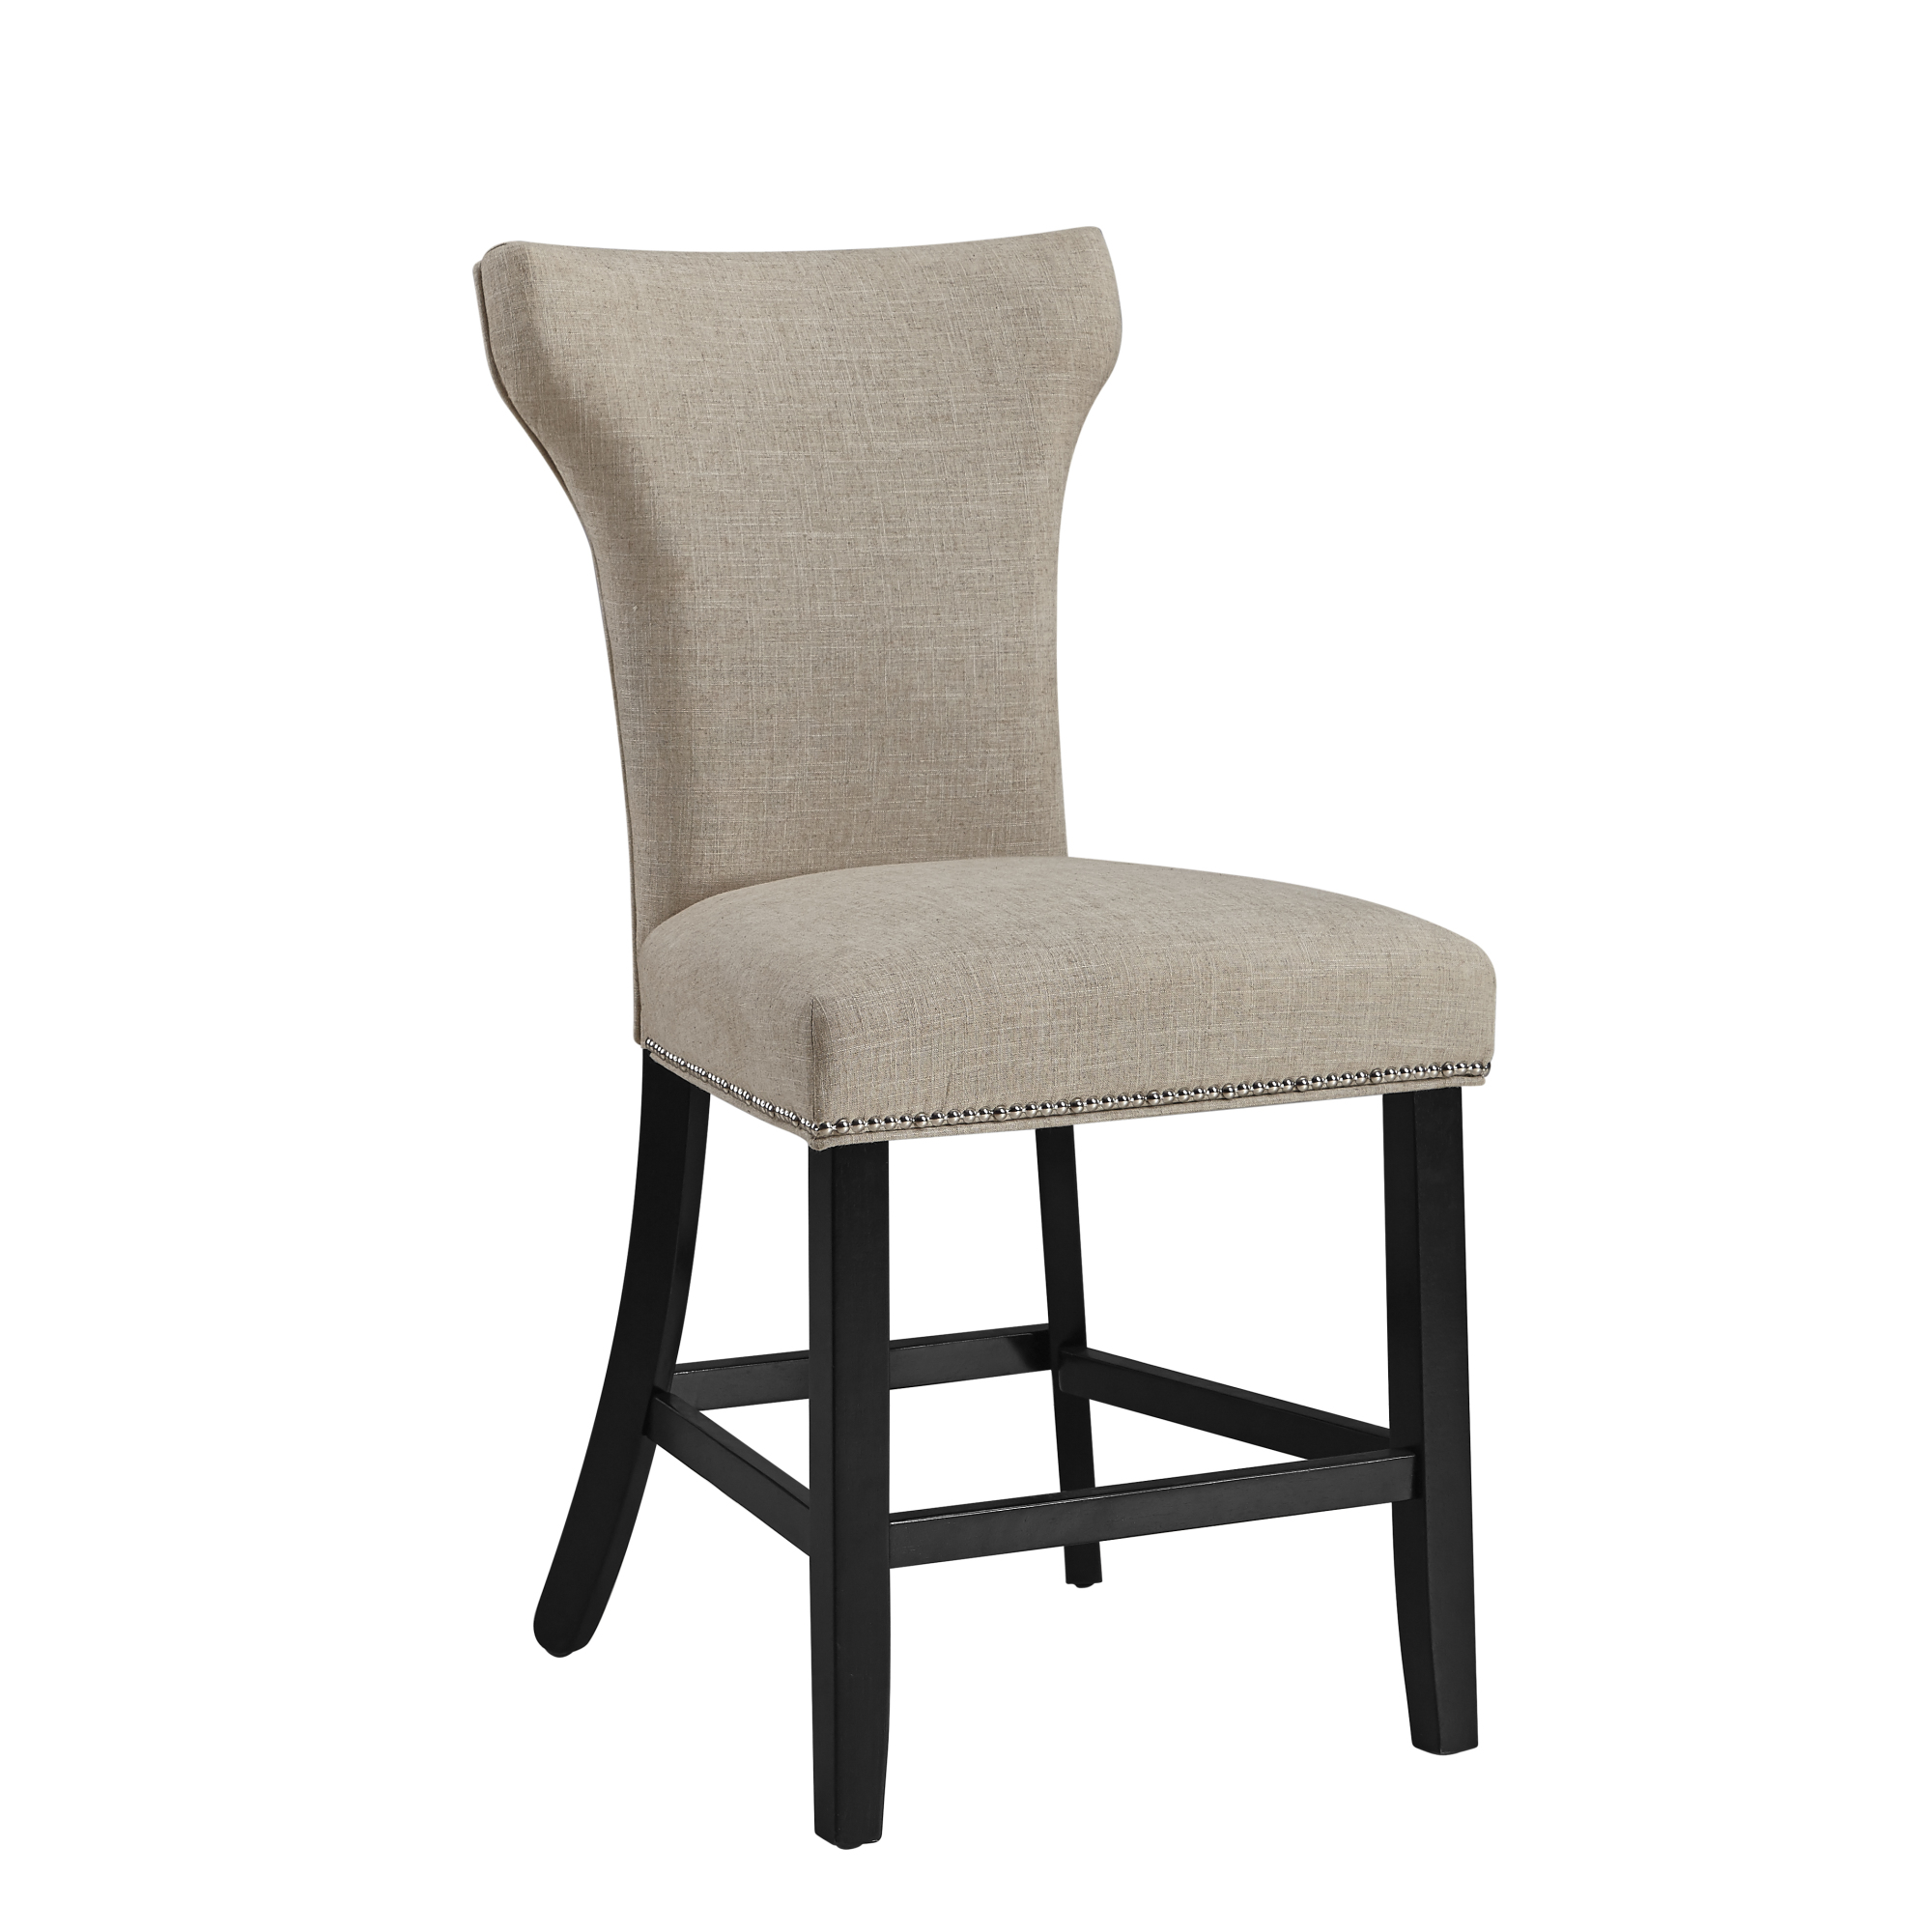 Belgian Luxe Nelson Bar Stool by Bassett Mirror at Alison Craig Home Furnishings